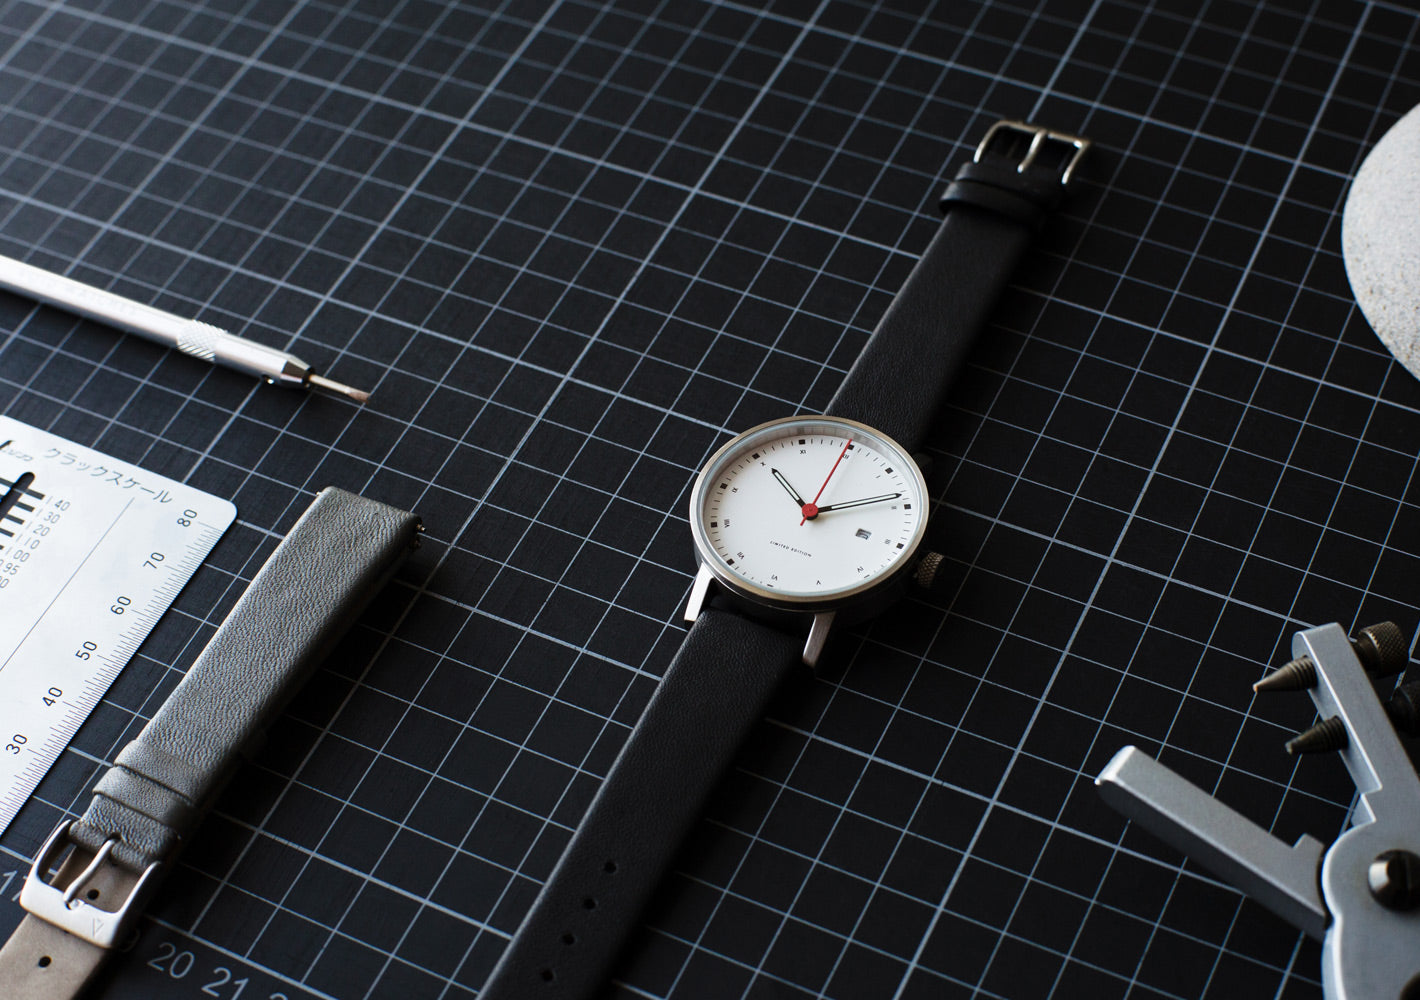 The Limited Edition V03D-Metis from VOID Watches, designed by David Ericsson.